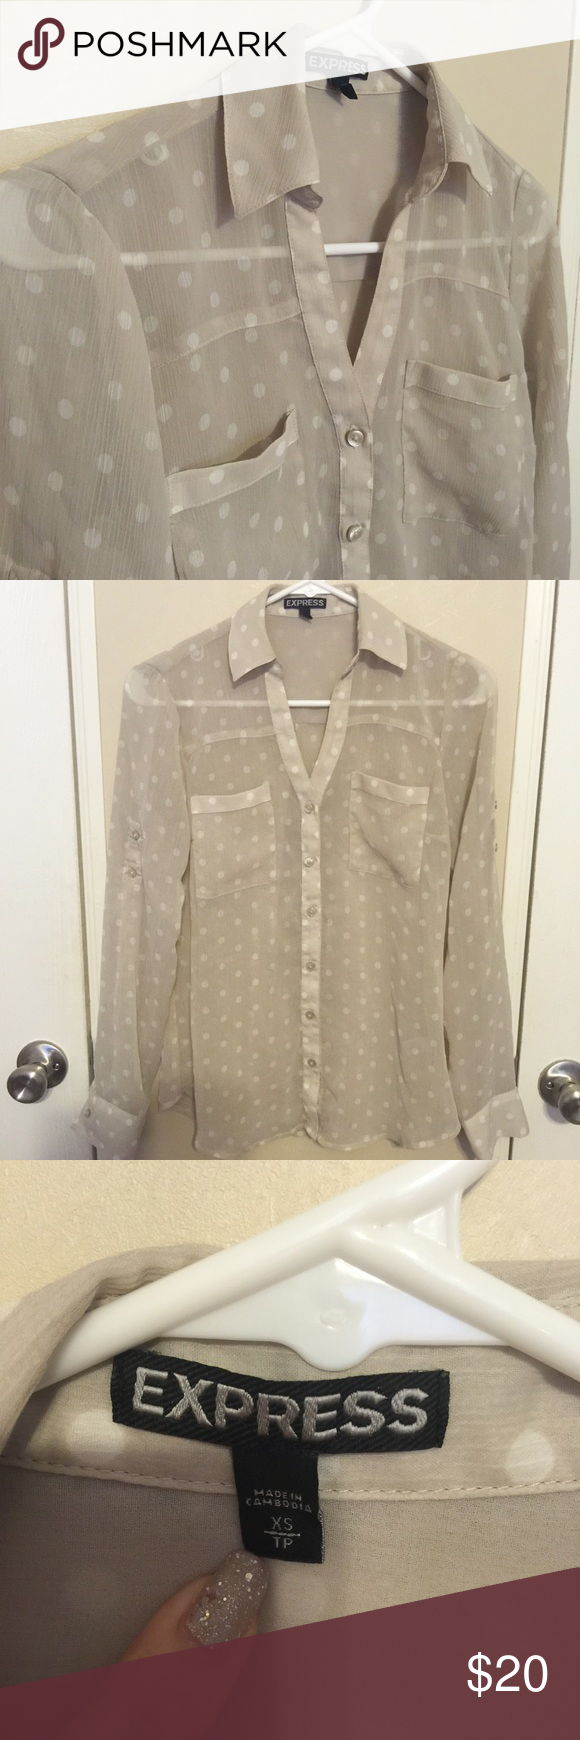 Express polka dot Portofino shirt Excellent condition. Portofino style shirt from Express. Beige with white polka dots. Express Tops Blouses